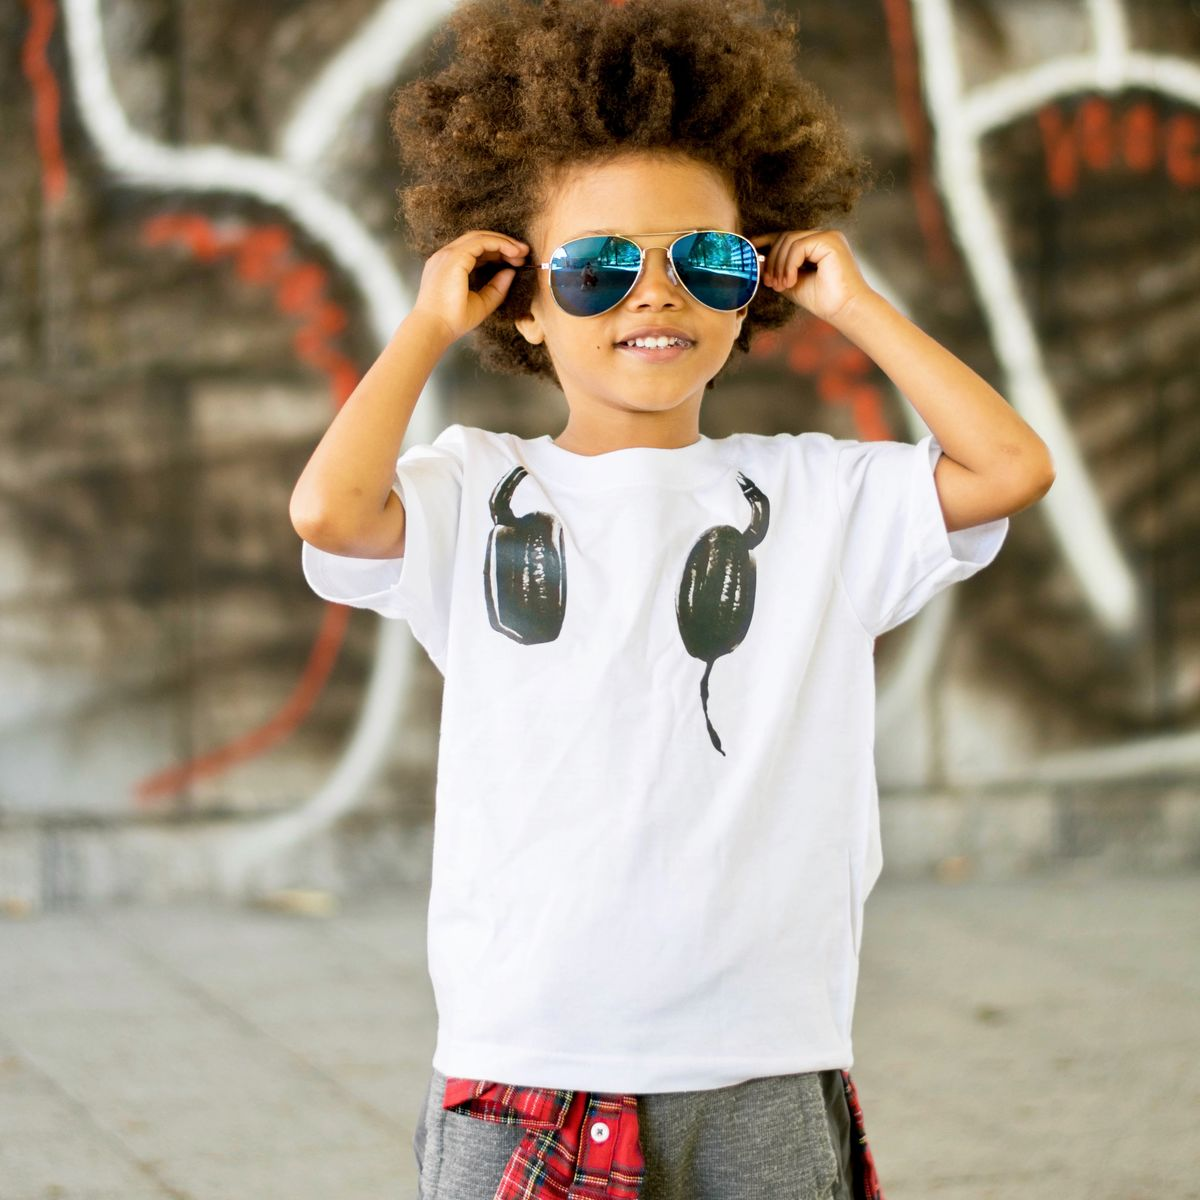 DJ Headphones T-Shirt - product images  of